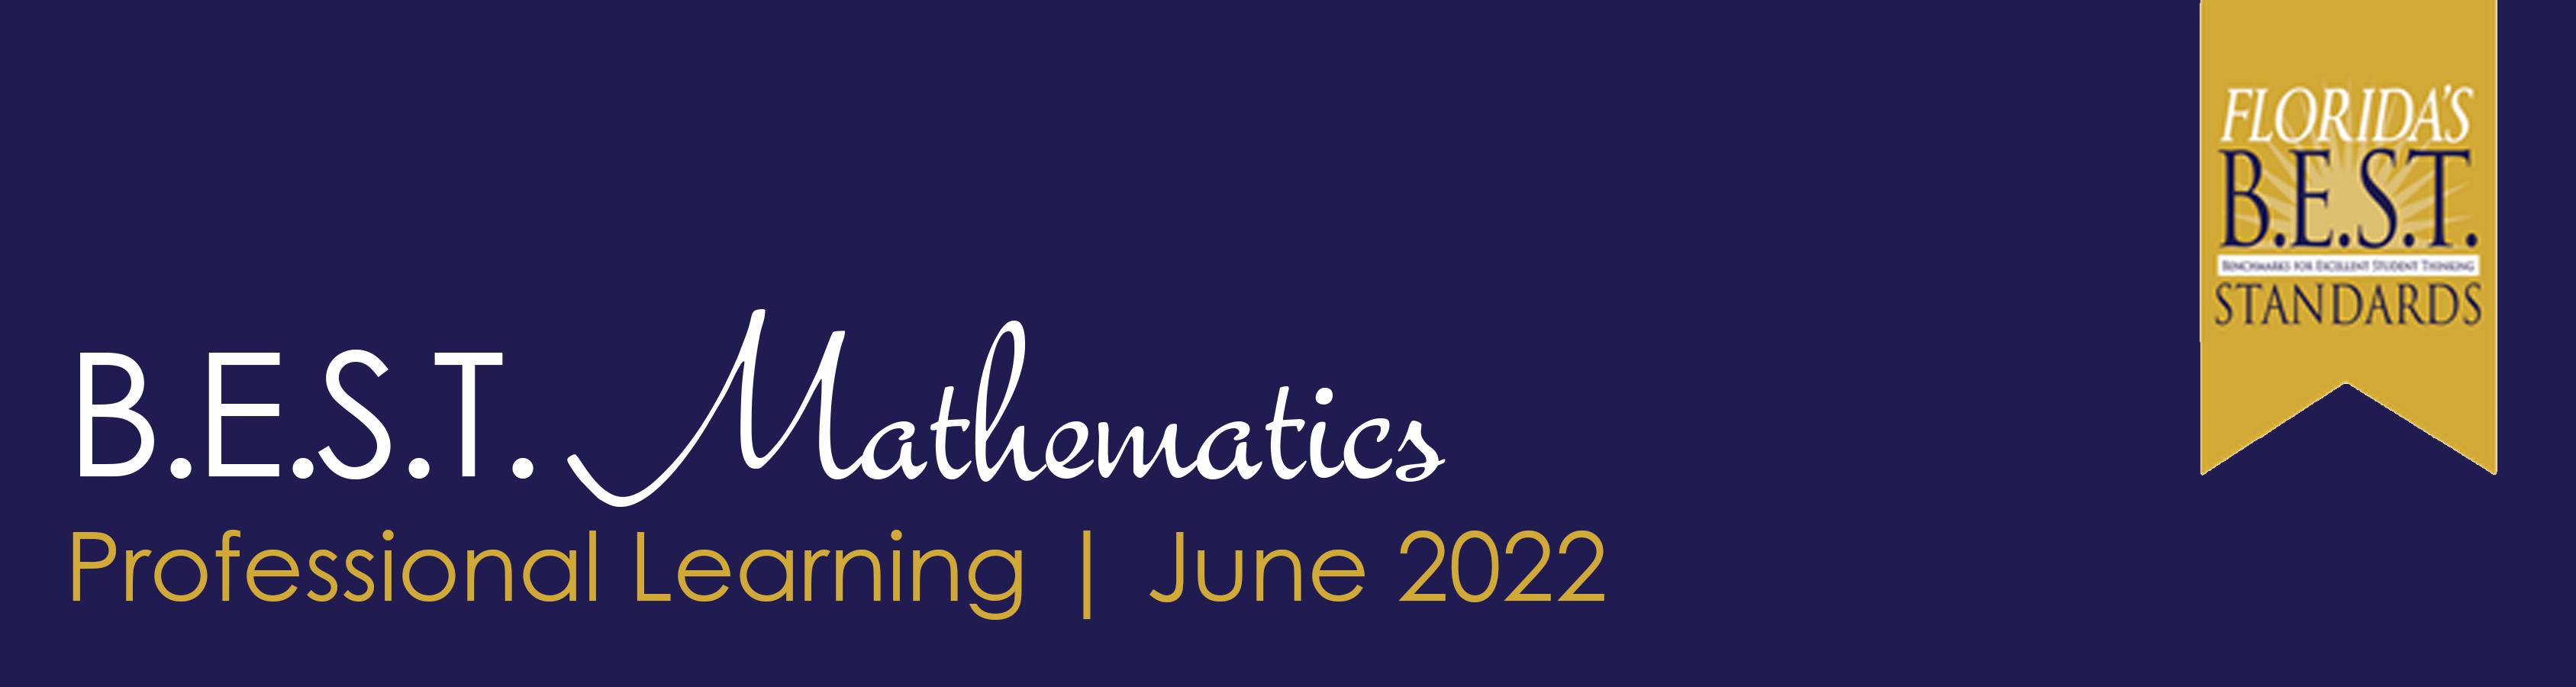 B.E.S.T. Standards for Mathematics – District Lead Professional Development